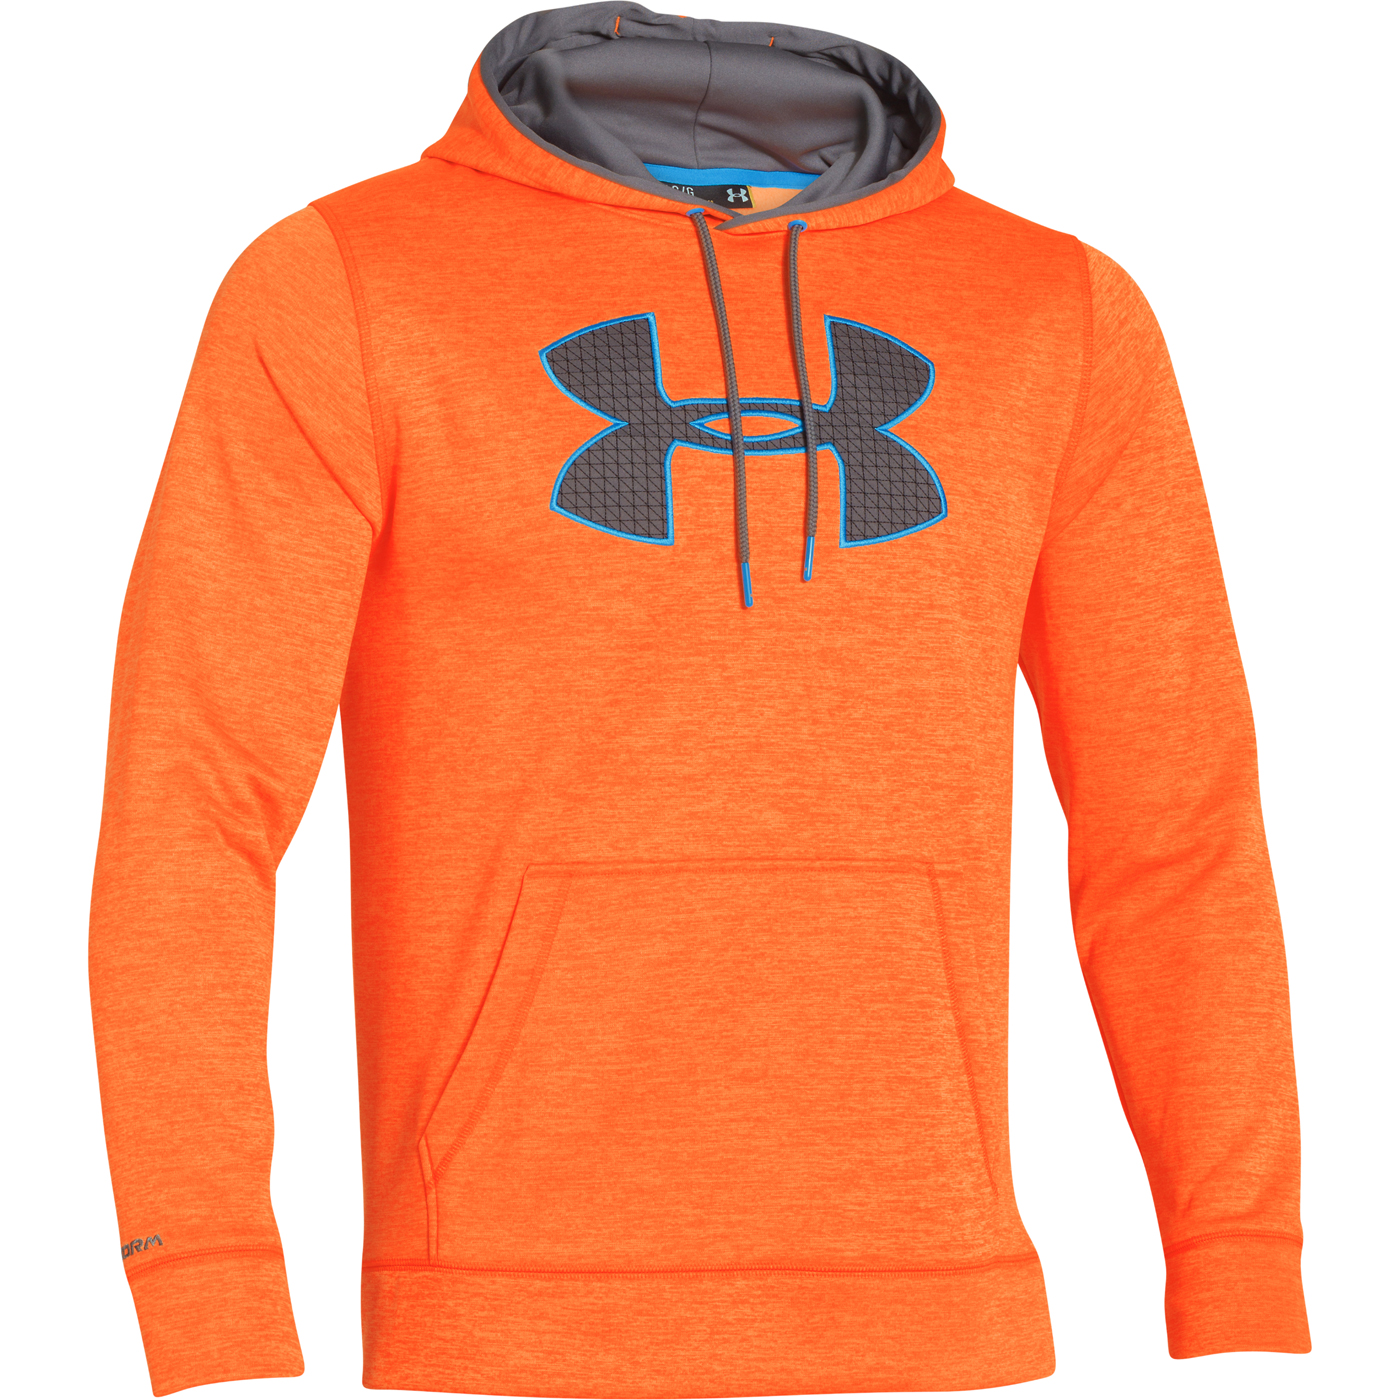 Buy cheap Online - clearance under armour hoodies,Fine - Shoes ...